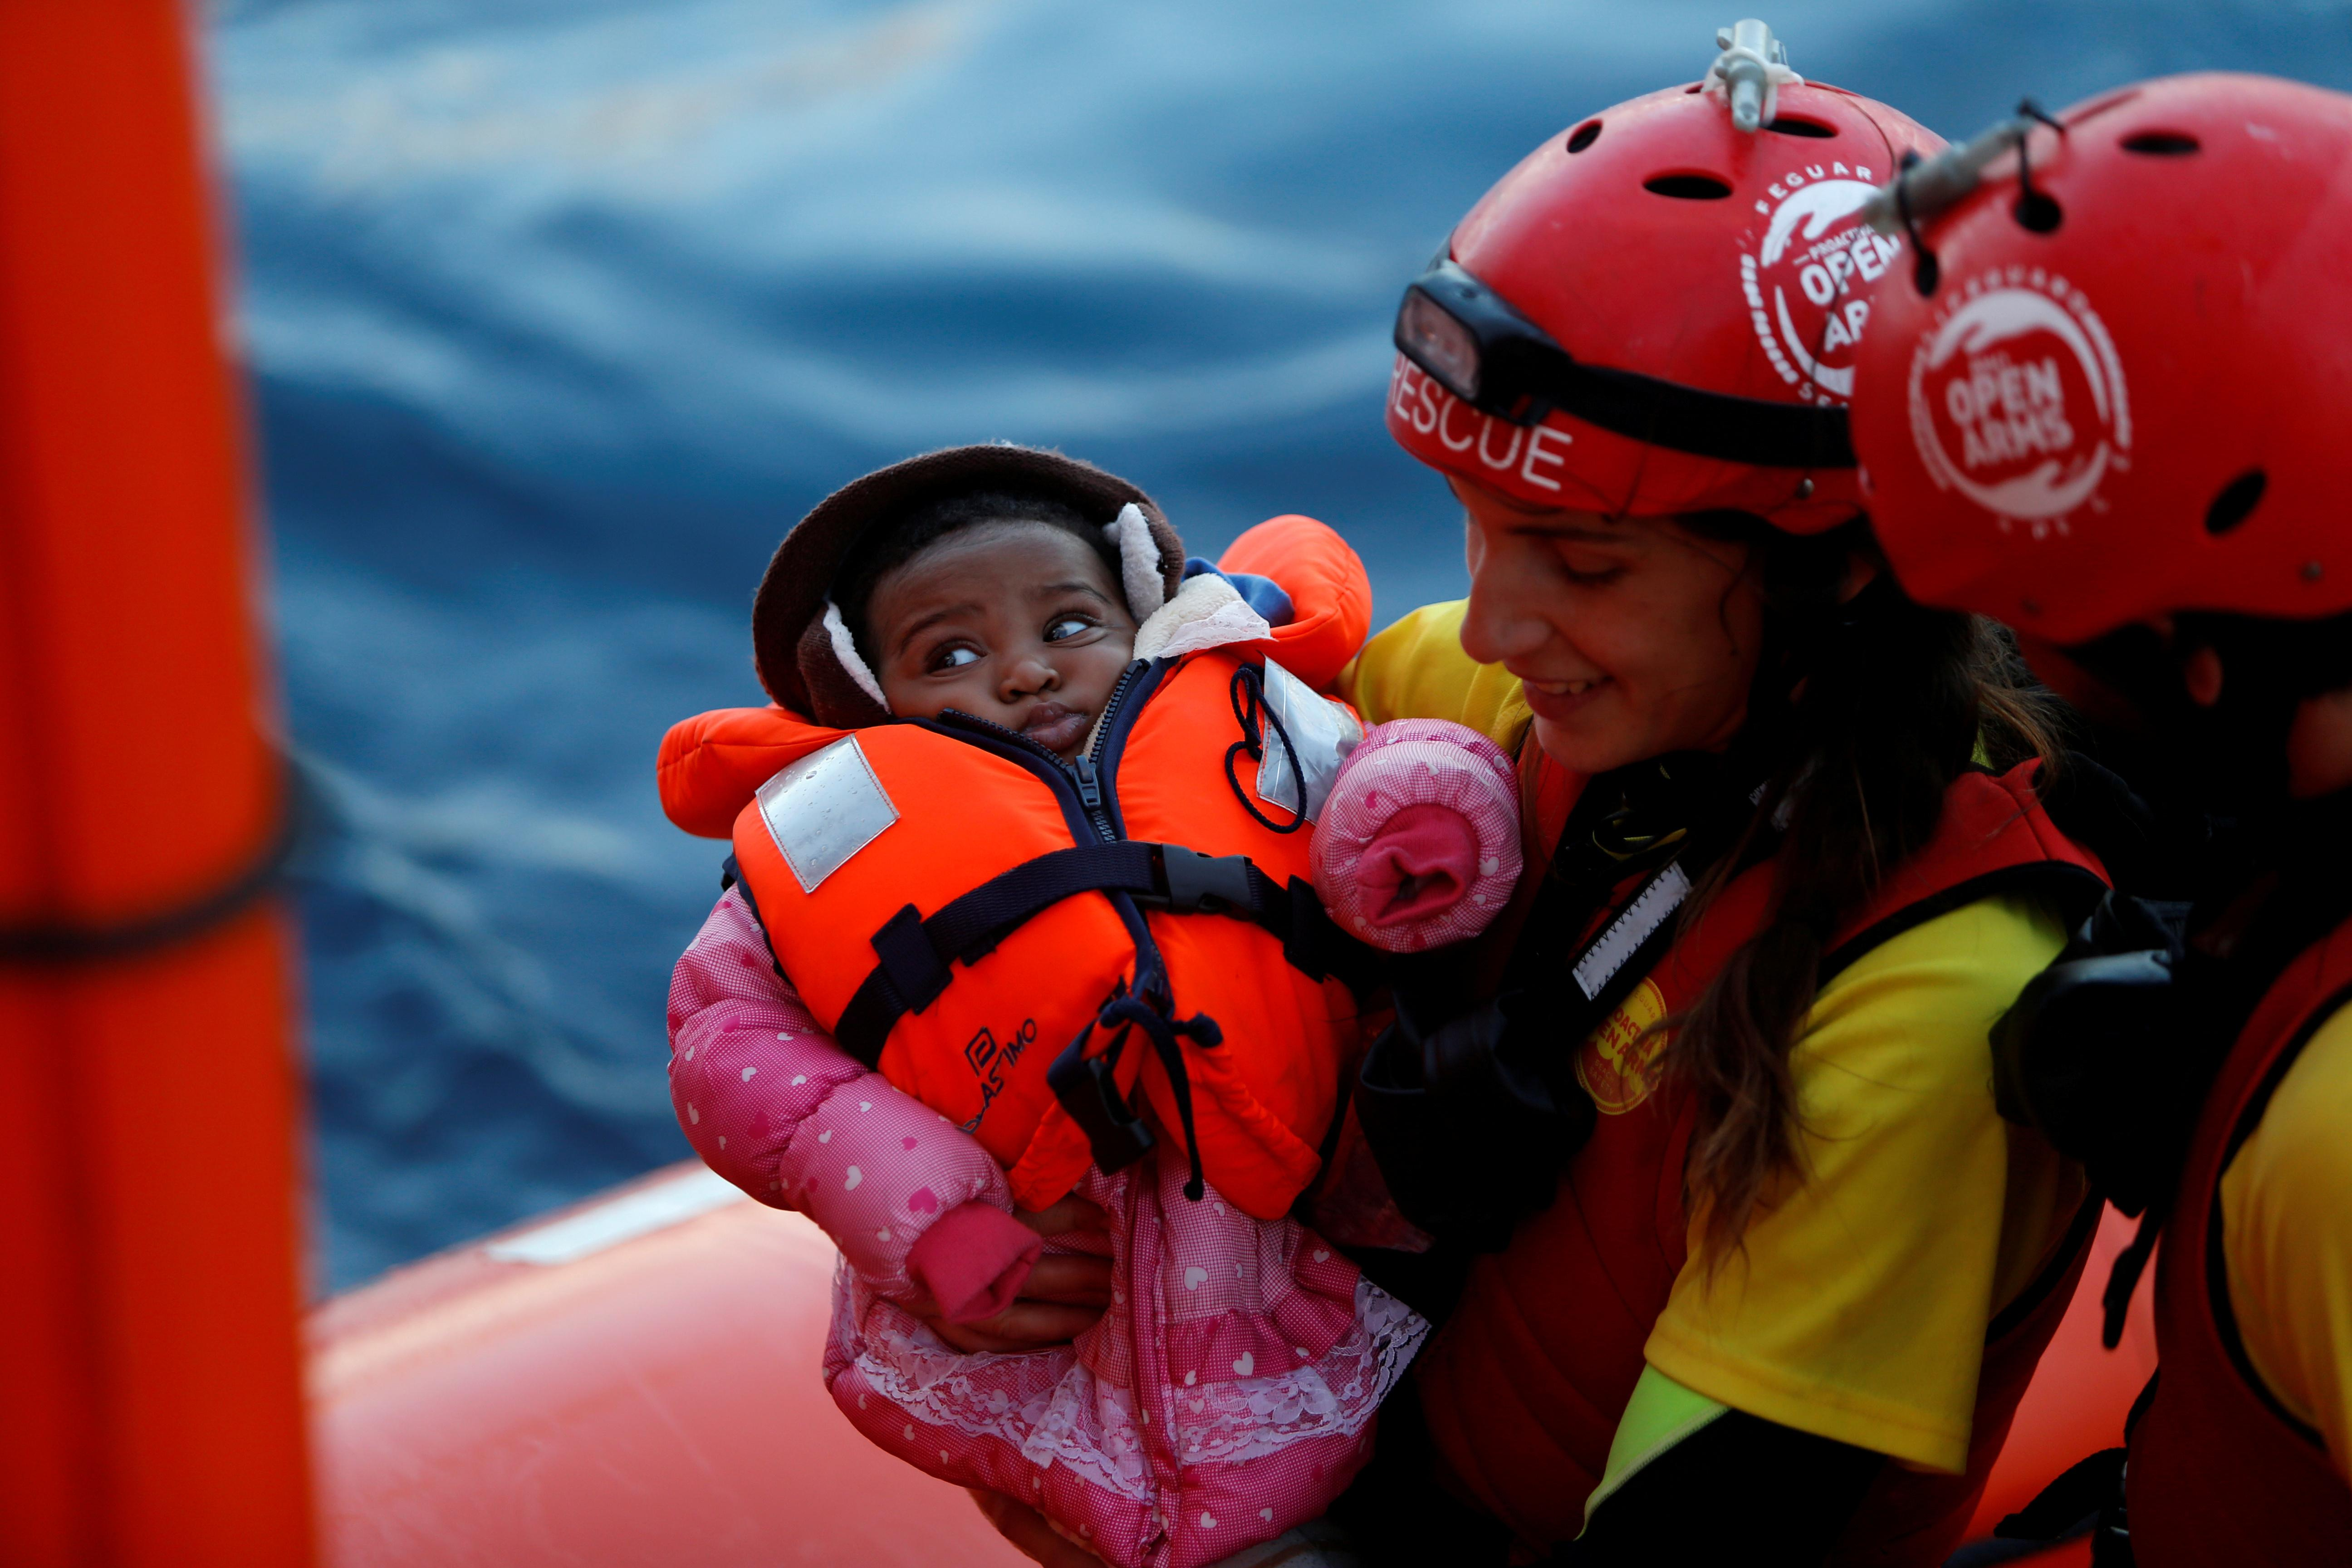 Spain rescues more than 900 boat migrants, finds four bodies